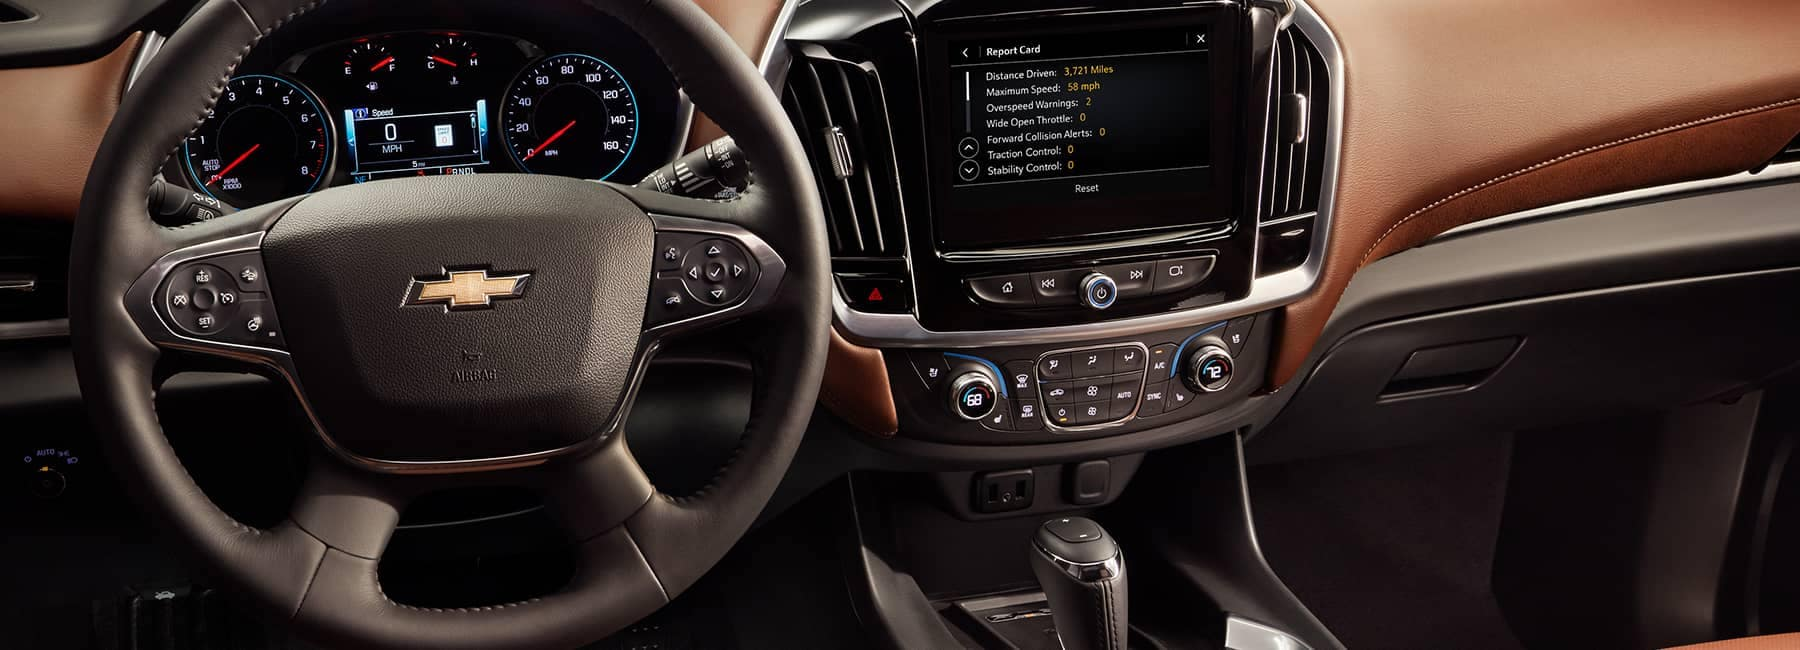 2020 Chevrolet Traverse Interior Dashboard